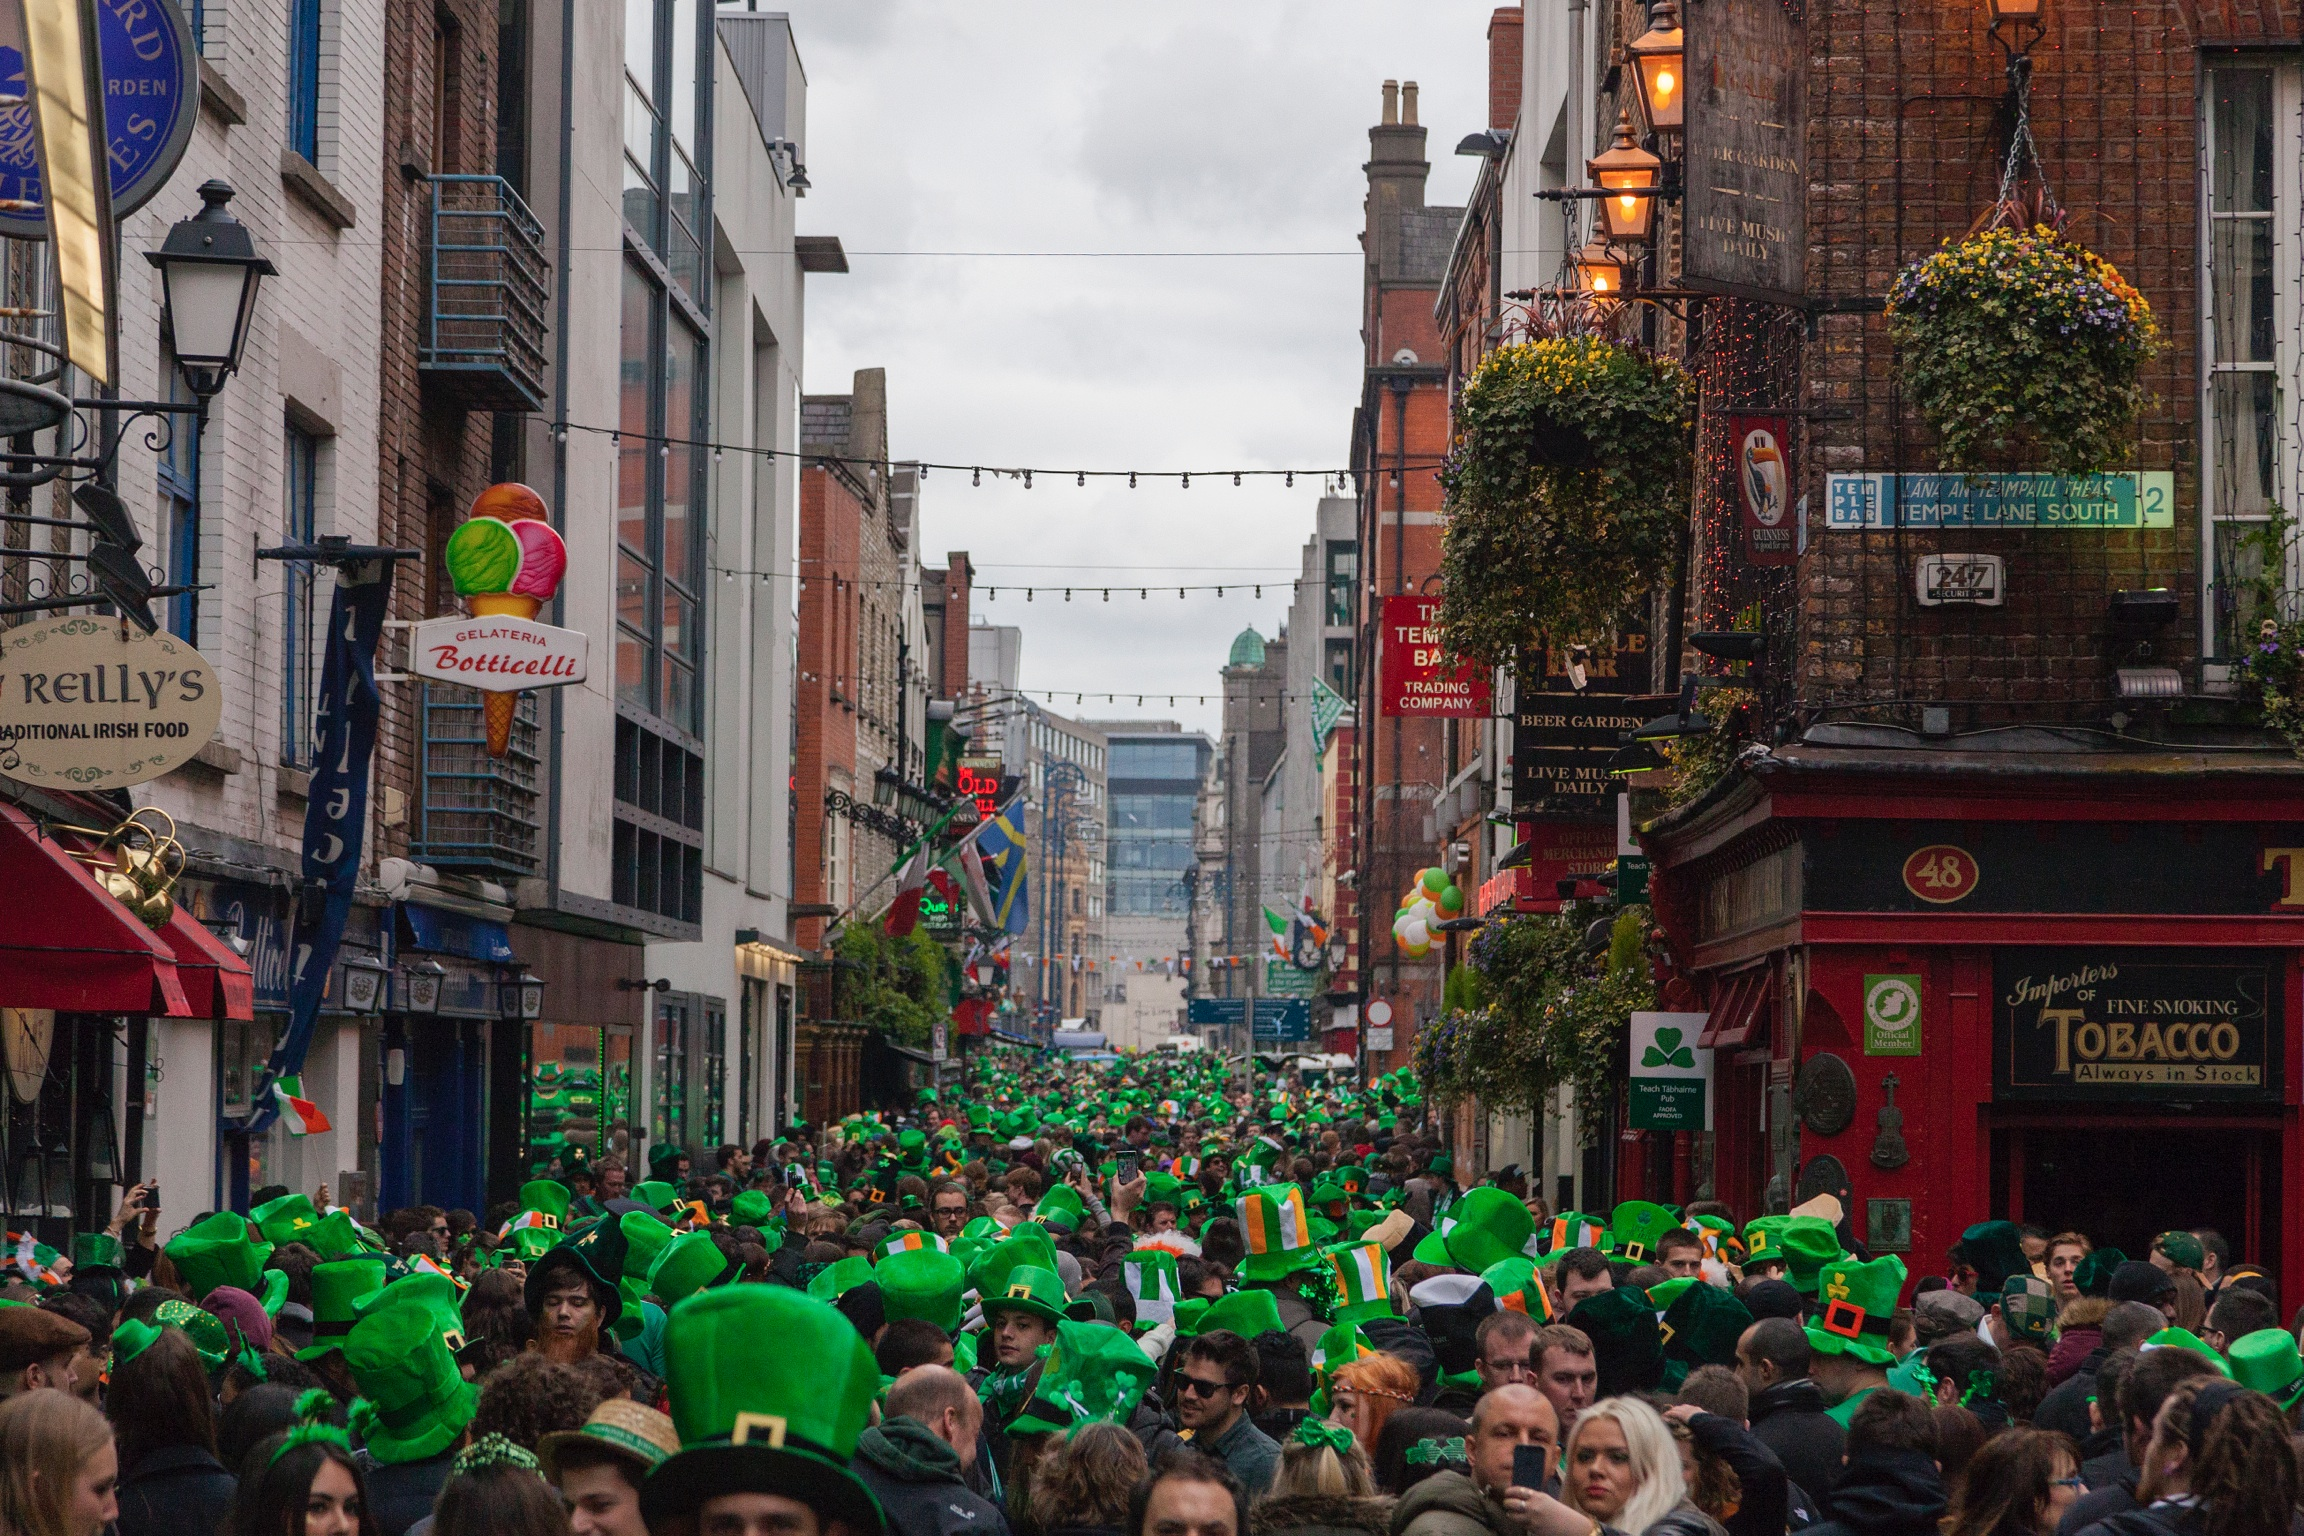 Image of the crowds gathered in Temple Bar after St. Patrick's day parade in Dublin, Ireland.